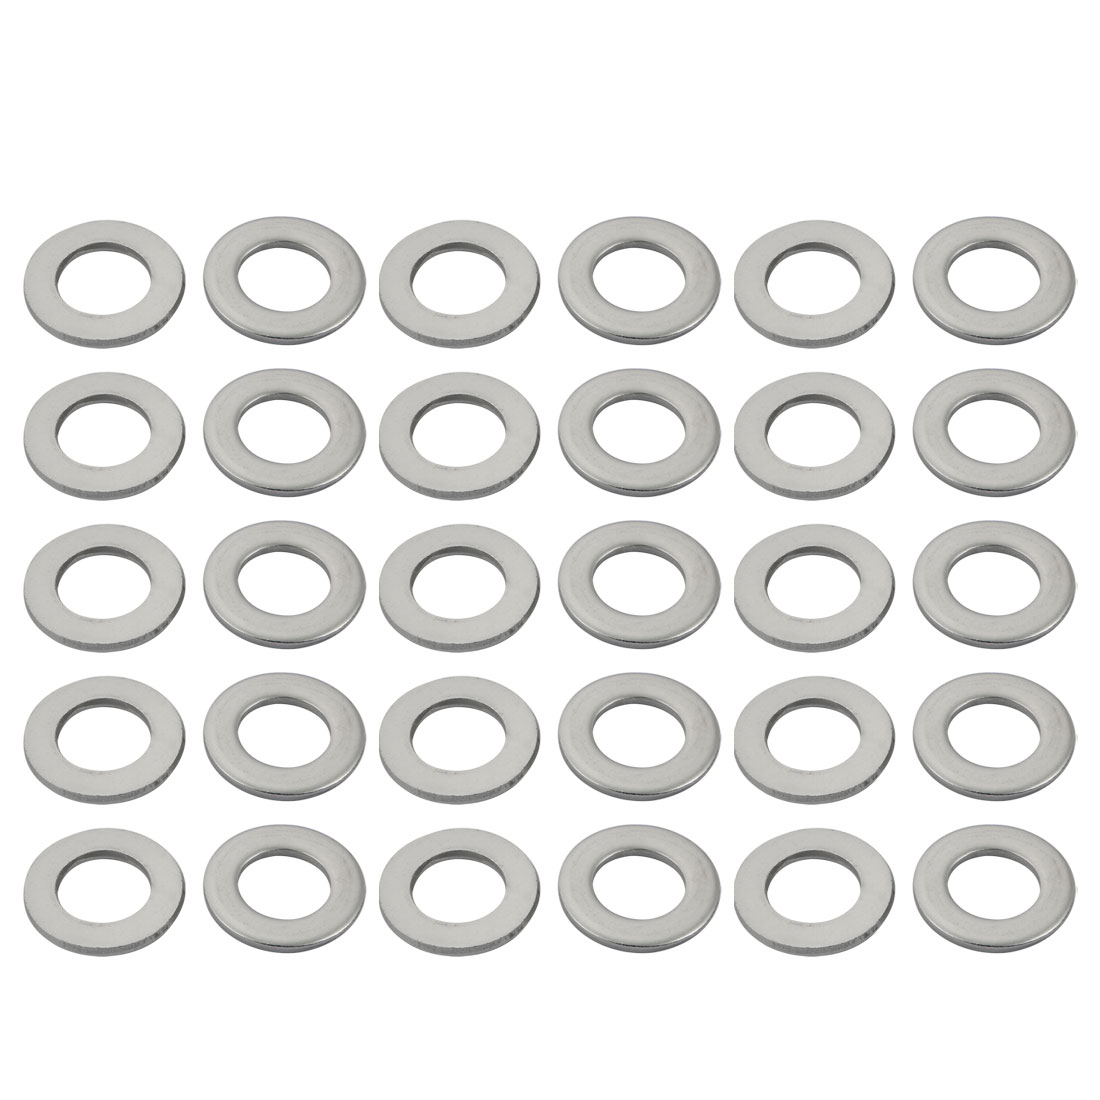 M18x34mmx3mm DIN125 316 Stainless Steel Flat Washer Silver Tone 30pcs